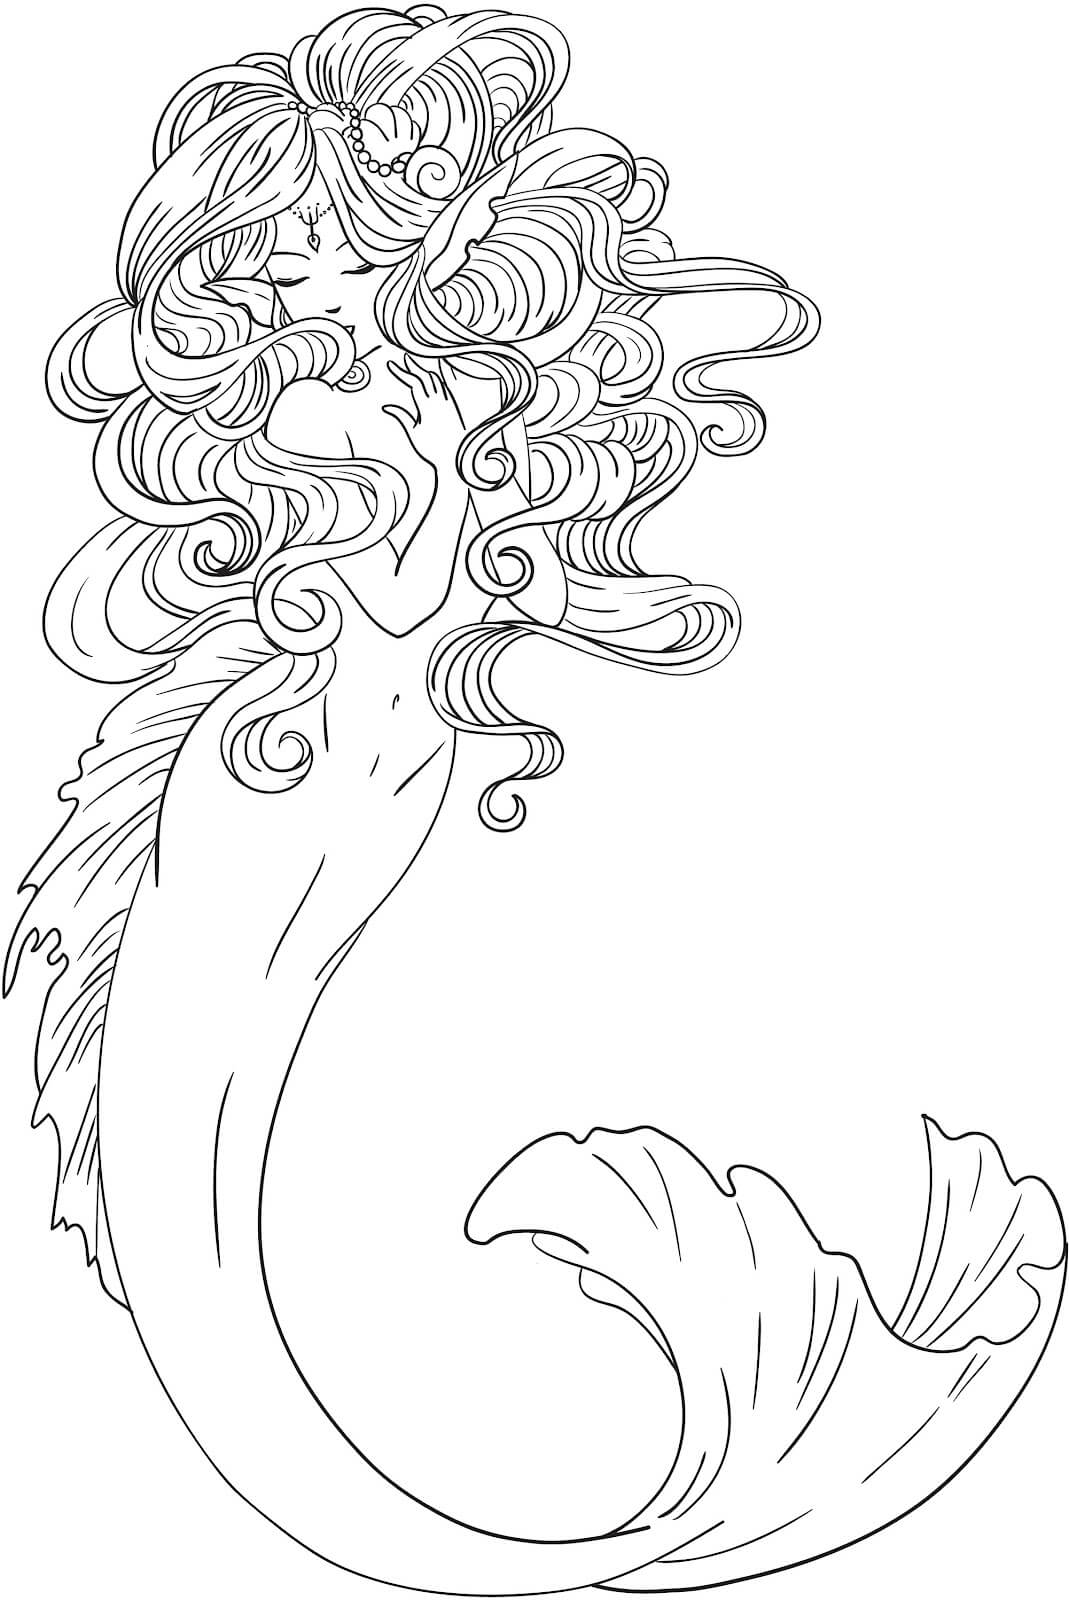 Mako Mermaid Coloring Pages Coloring Home Mermaid Printable Coloring Pages